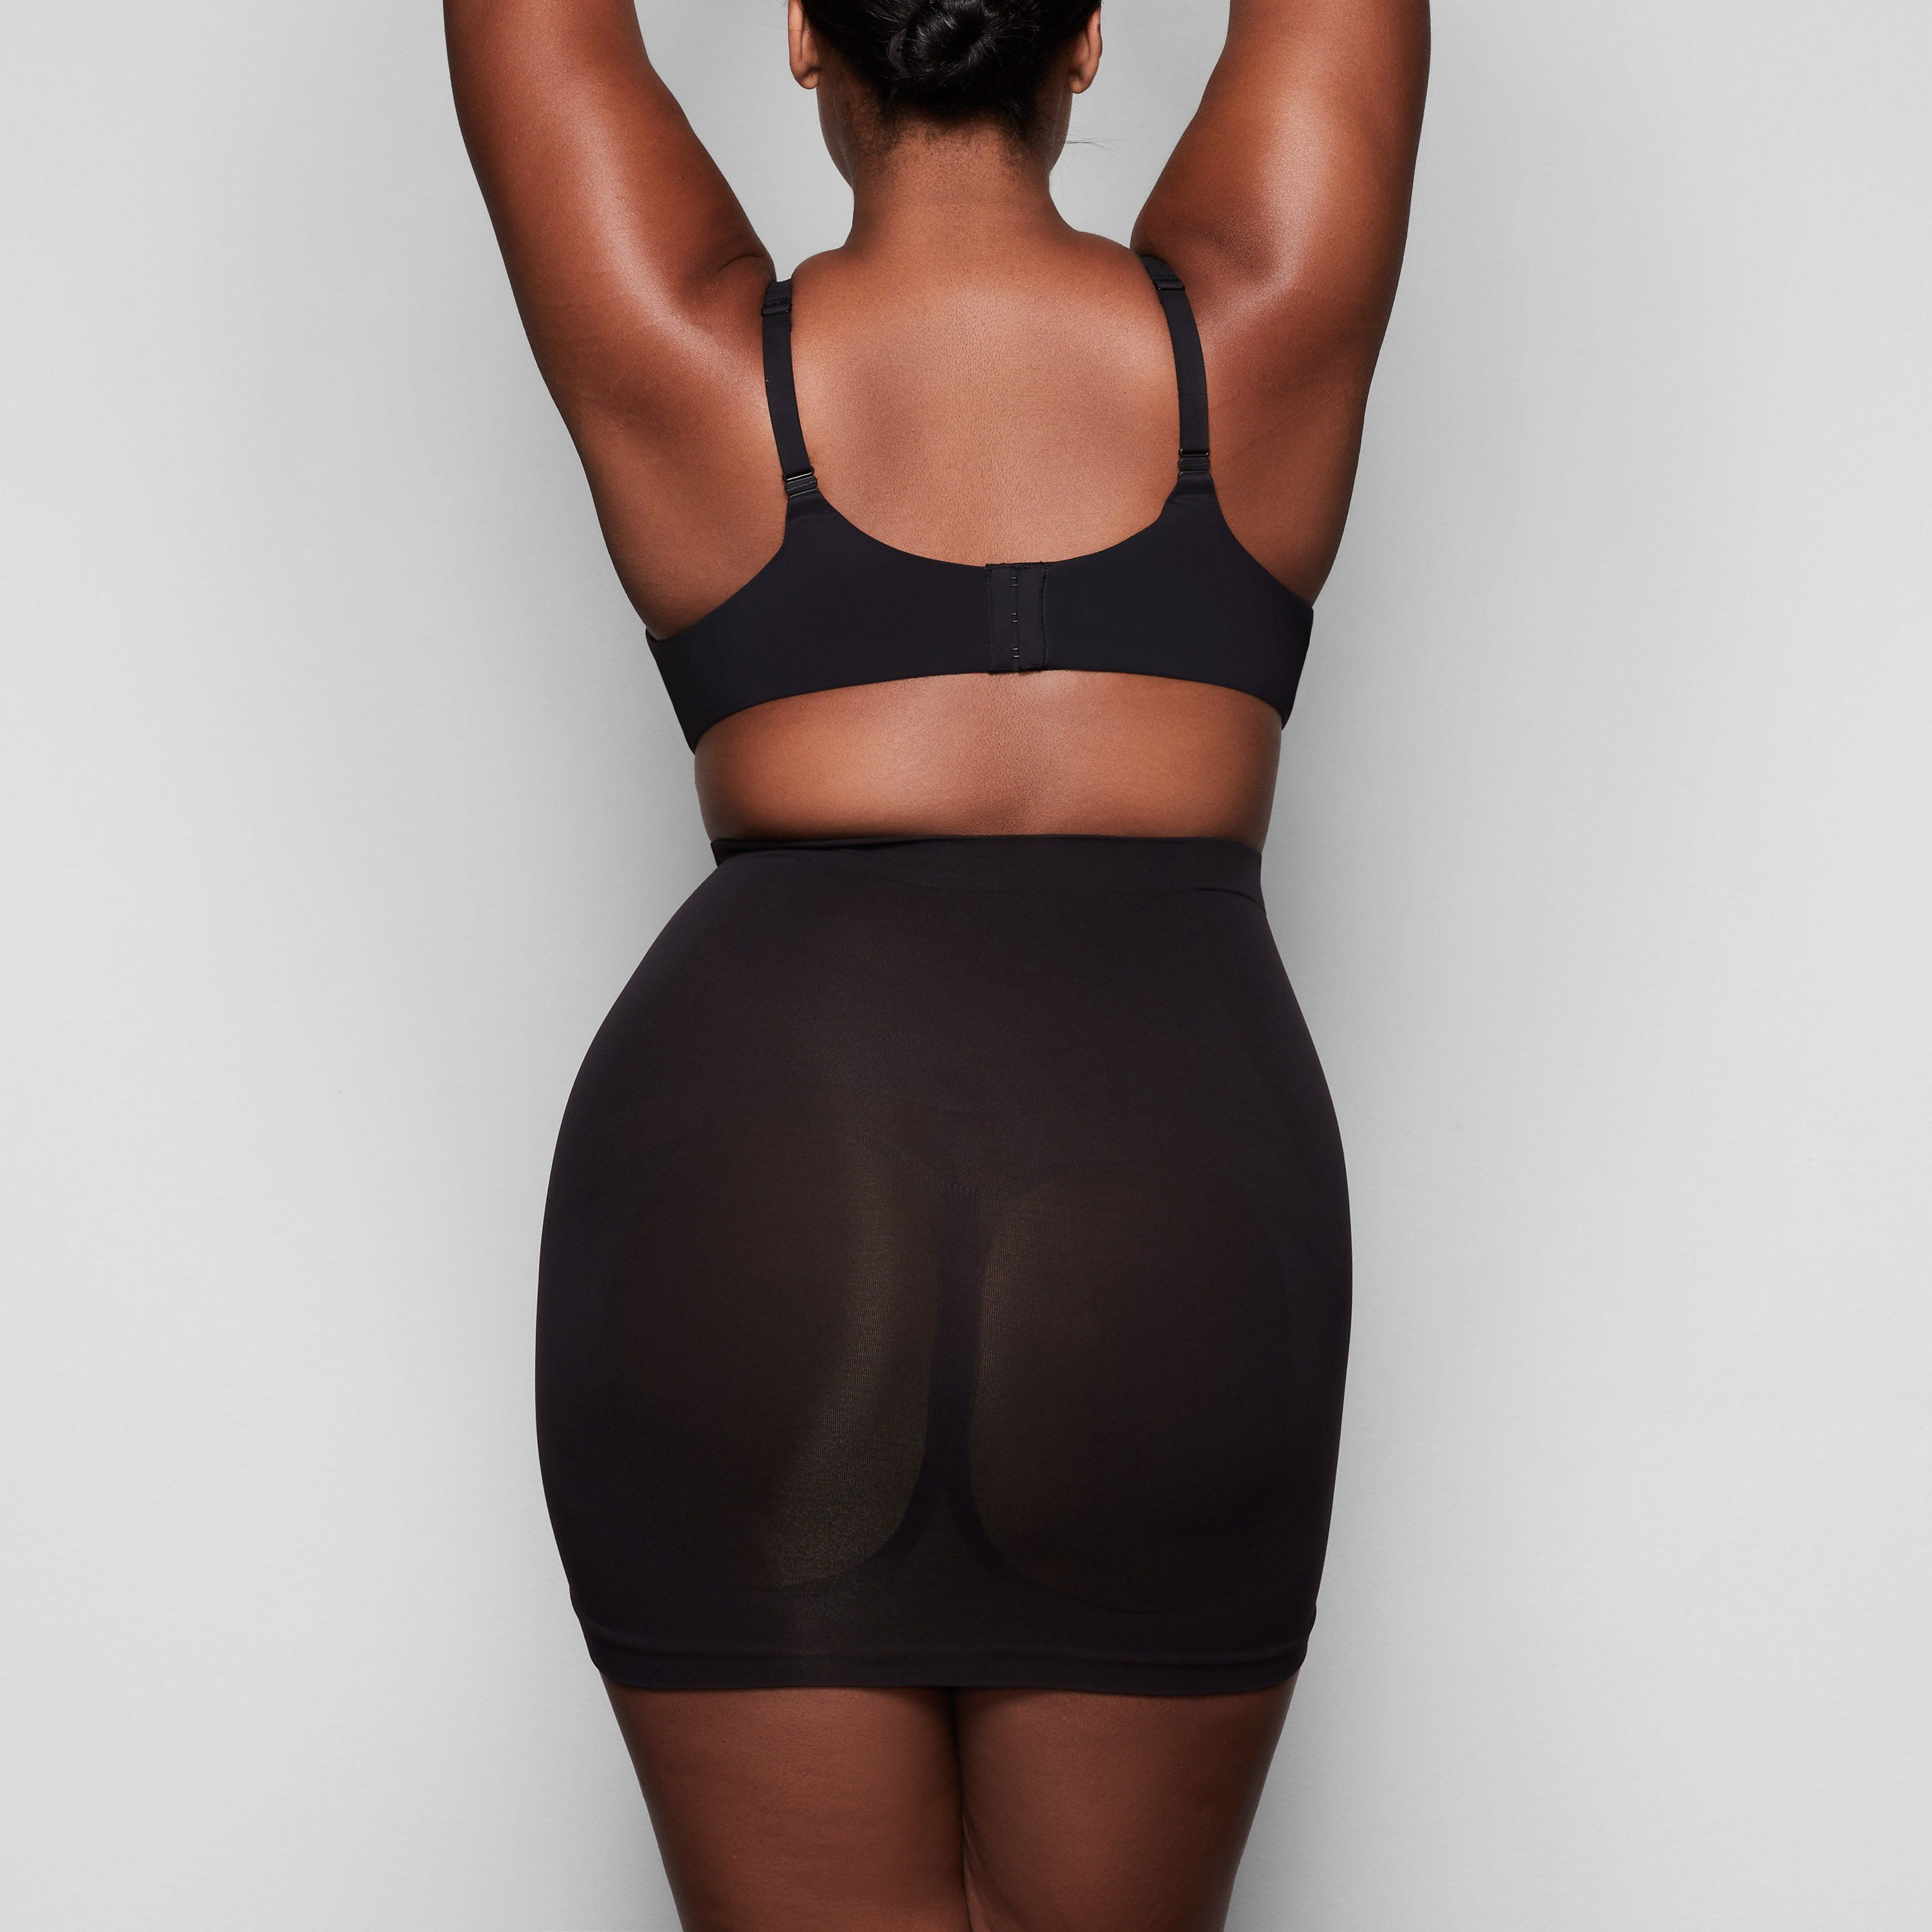 2021 New Shapewear For Women Extreme Curve Body Shaper Shapermint Cami In Lingerie